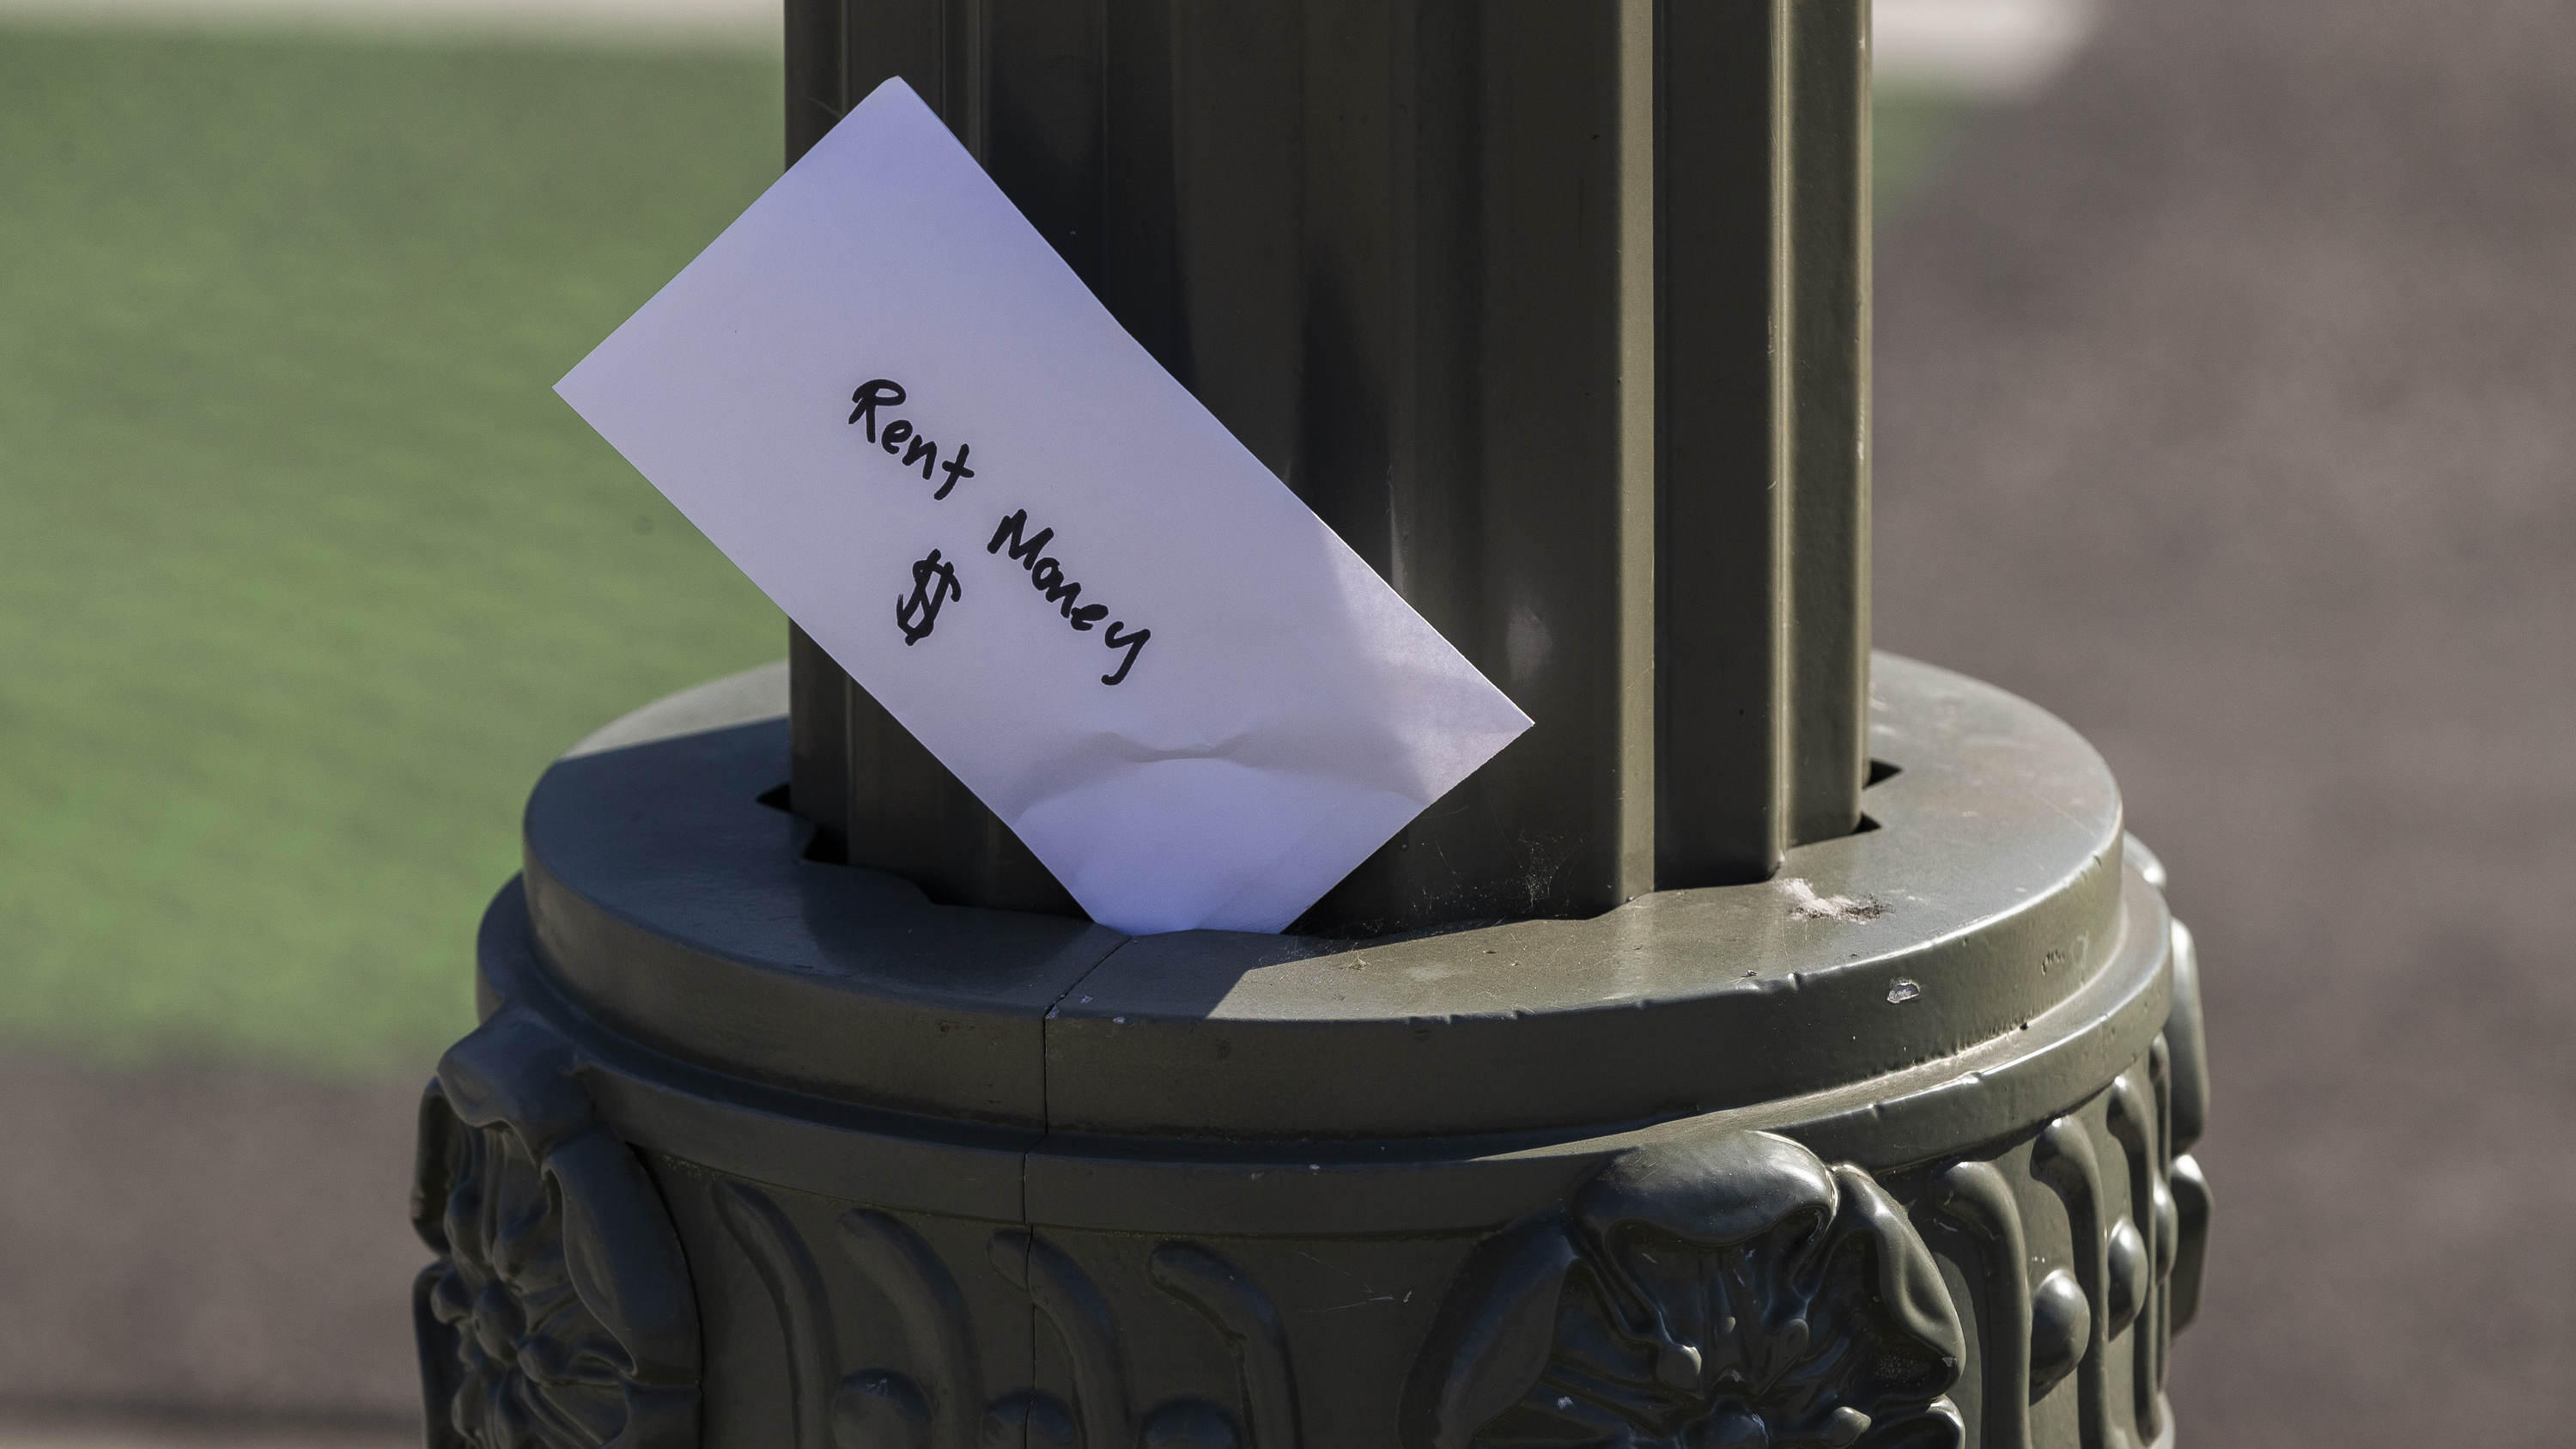 """A paper envelope written with the words """"Rent Money $"""" is left tucked in a lighting pole in April in the Boyle Heights area of Los Angeles. Amid massive job losses due to COVID-19, California Gov. Gavin Newsom signed an extended eviction moratorium on Monday."""